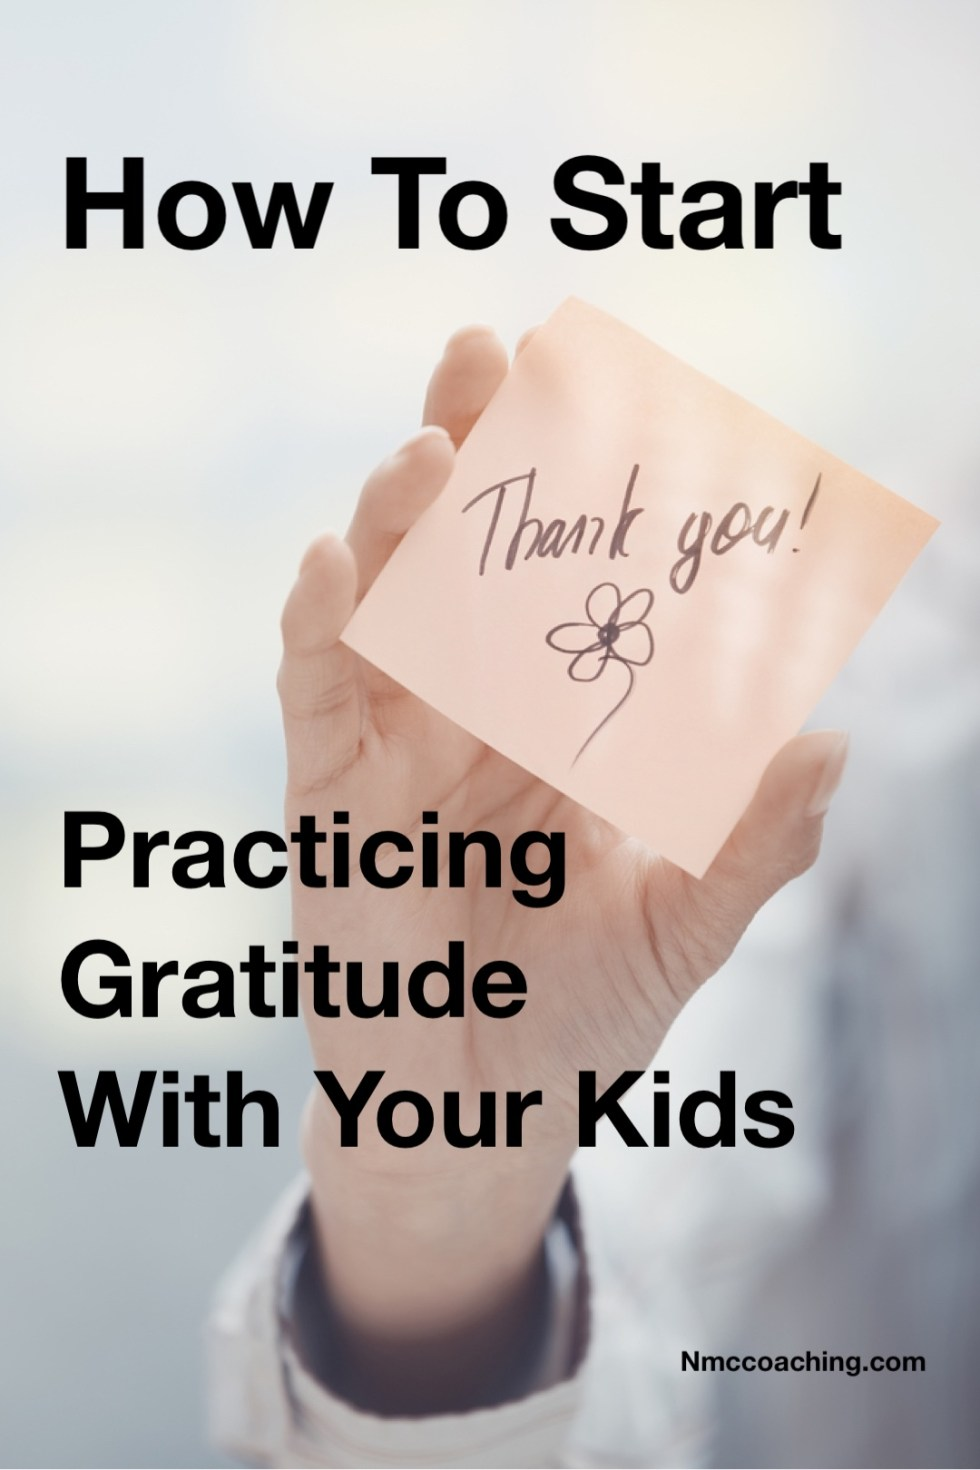 How to Start practicing Gratitude with Your Kids